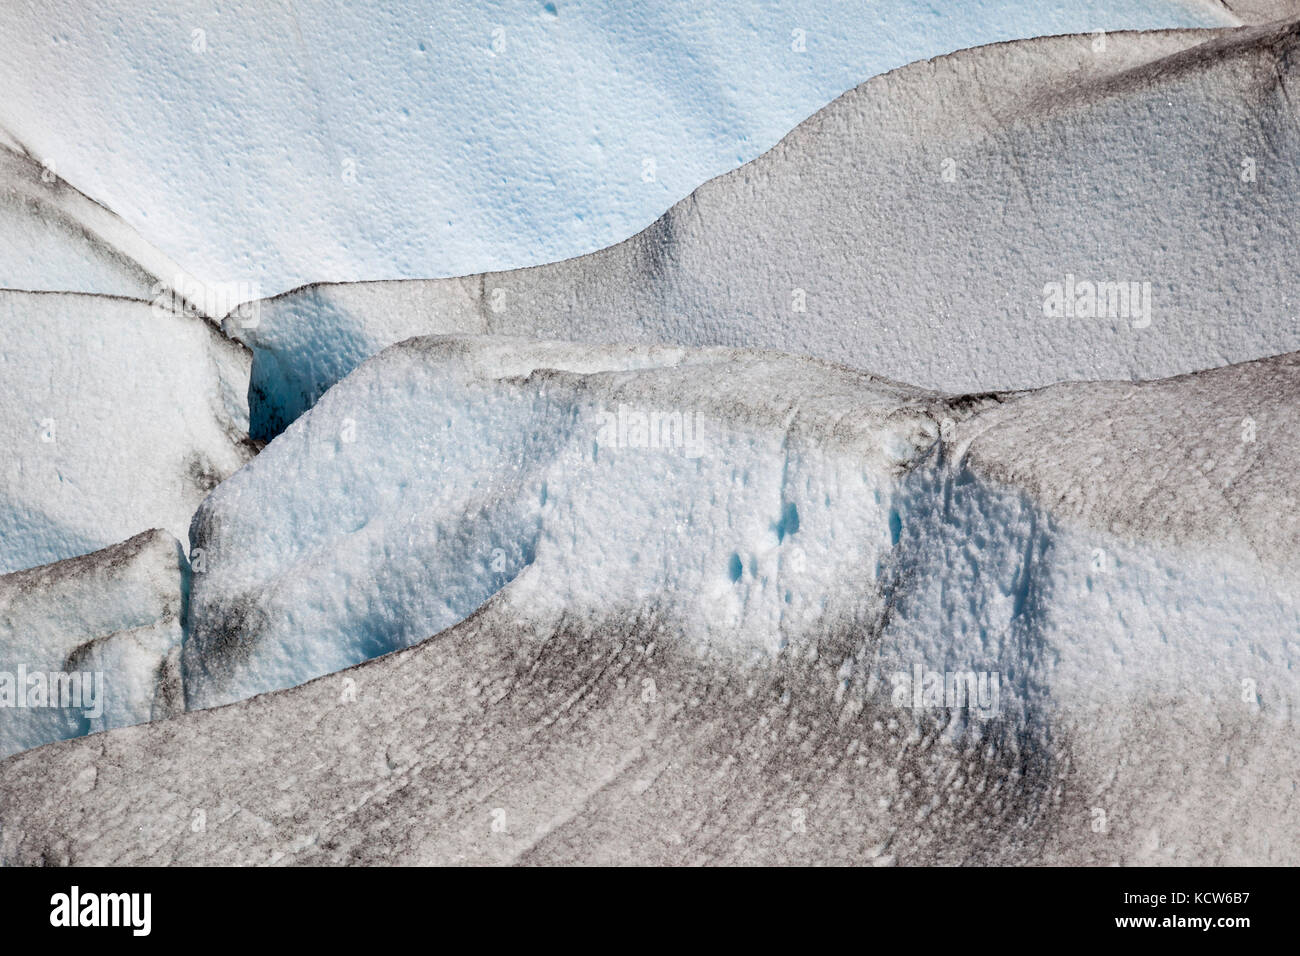 Detail view, ice on the Viedma Glacier, Southern Patagonian Ice Field, Los Glaciares National Park, Argentina - Stock Image